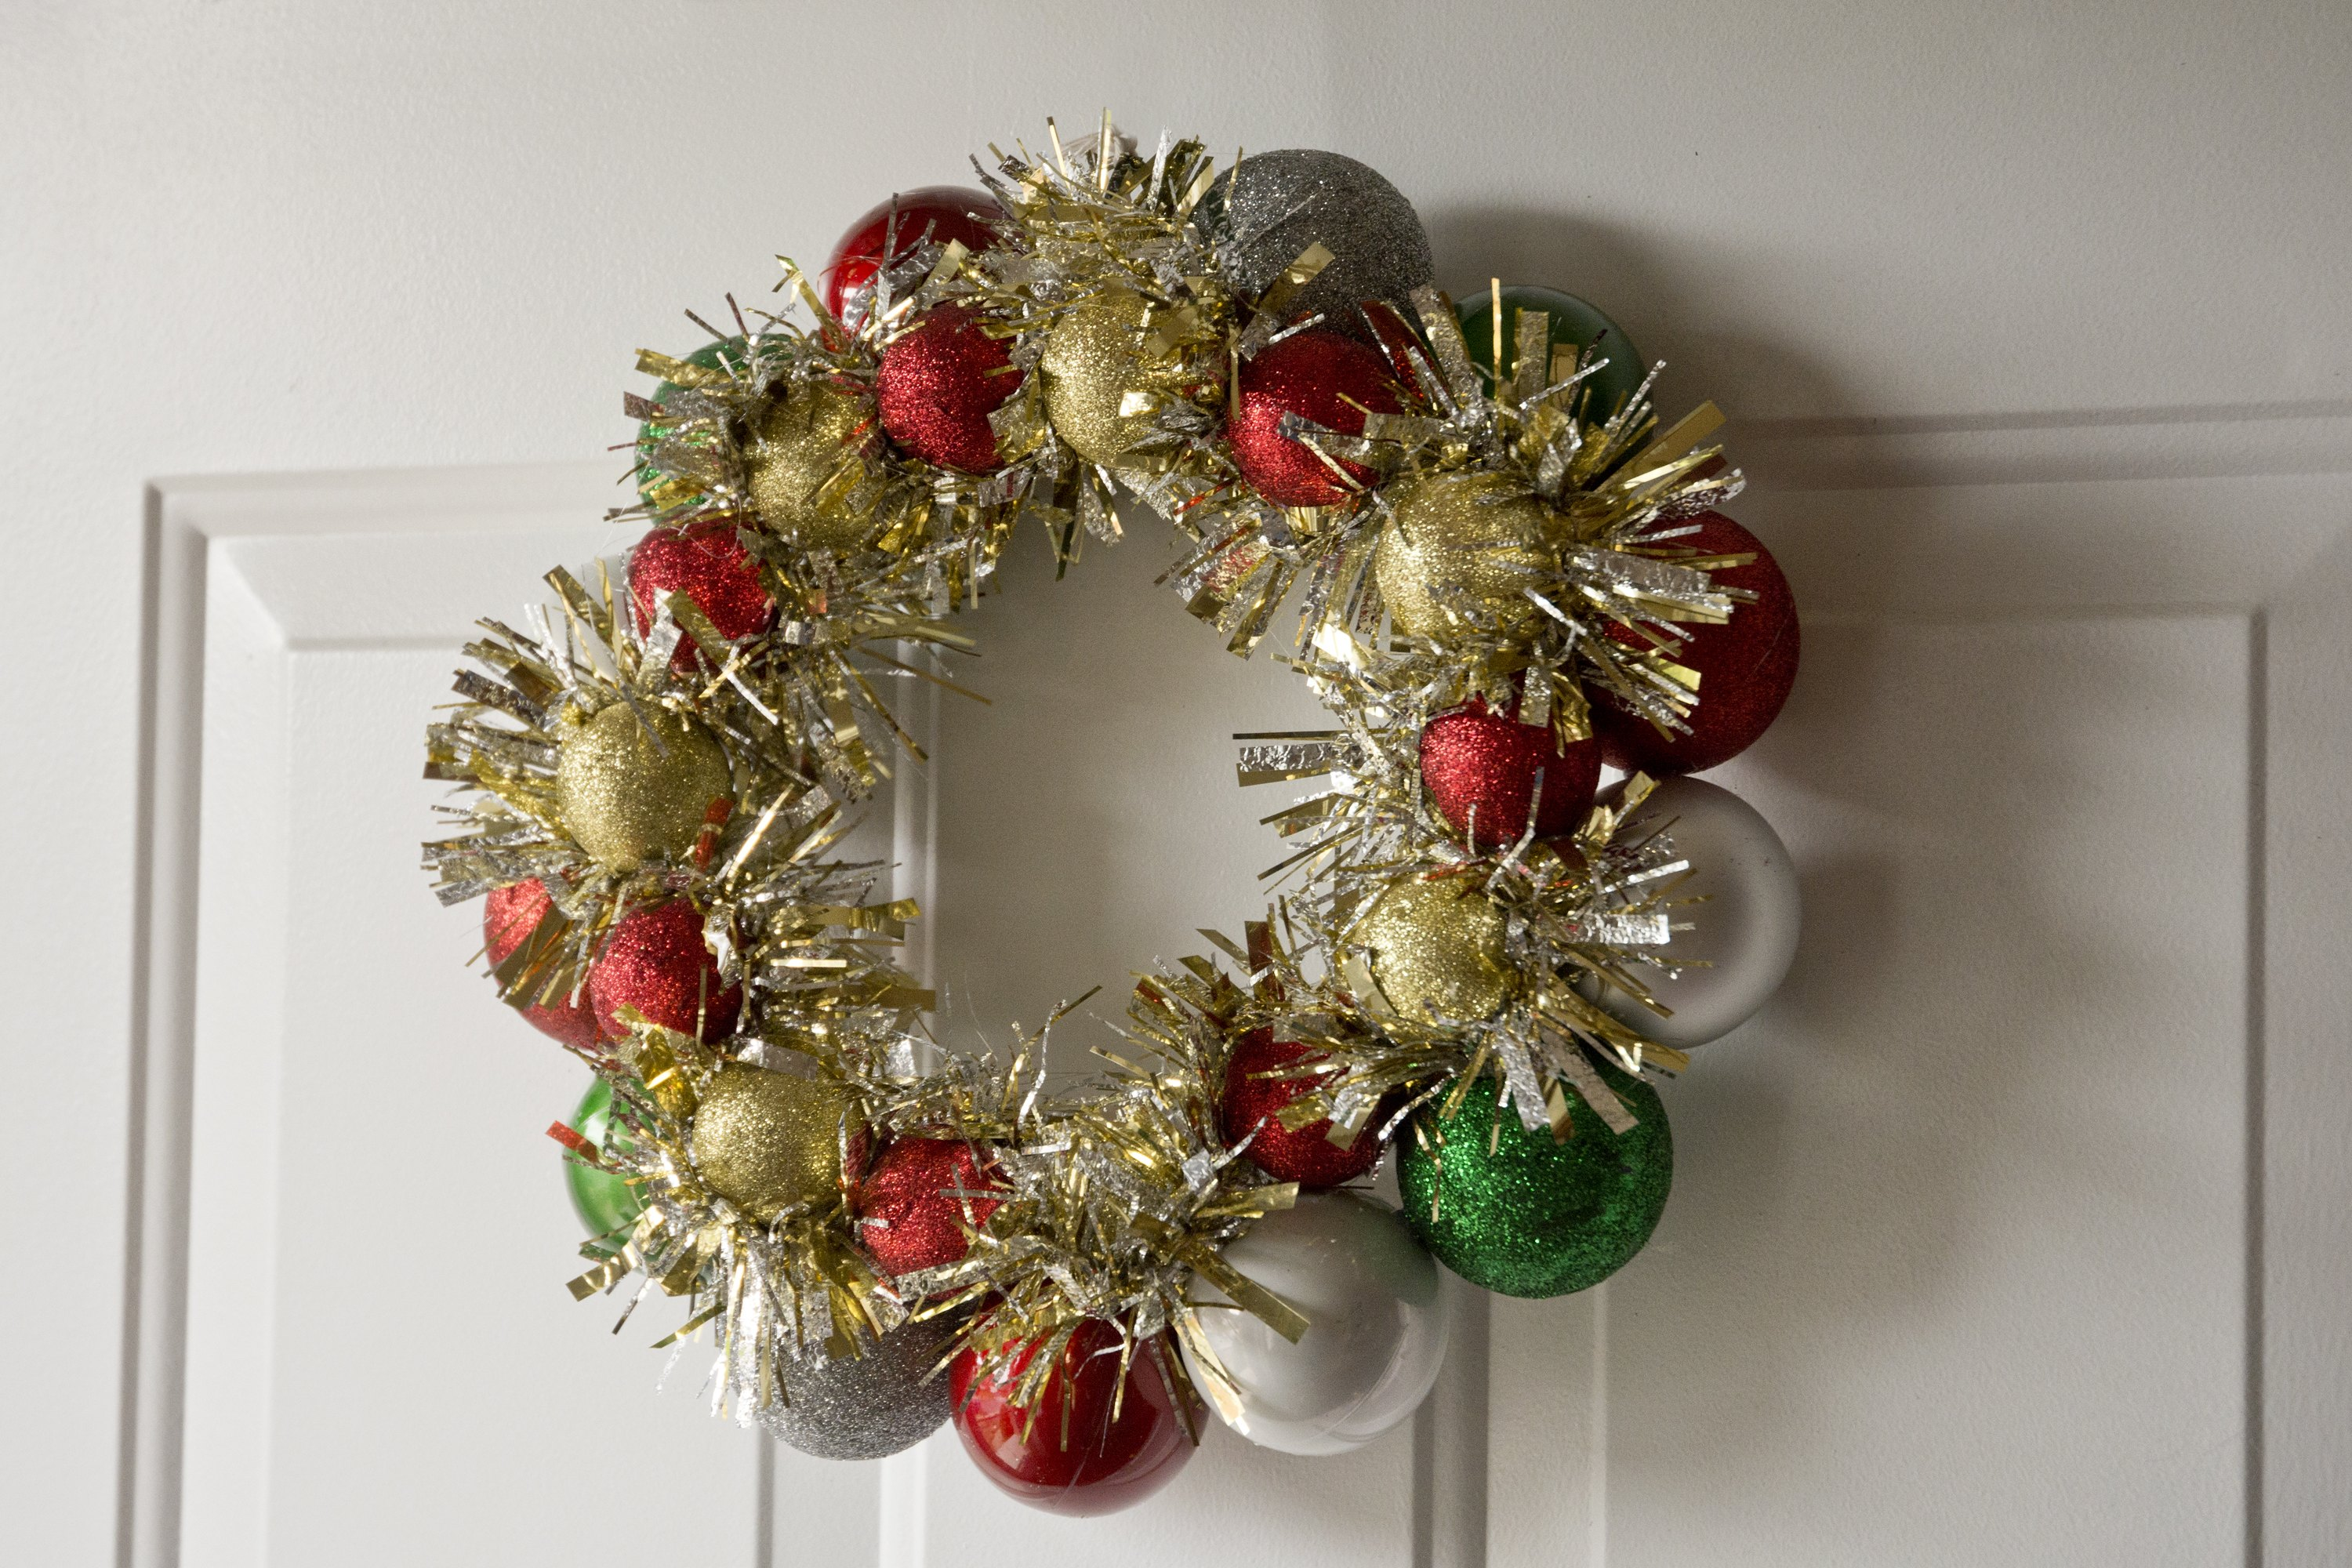 How to Make a Christmas Wreath out of a Coat Hanger by Putting Christmas Balls on It | eHow